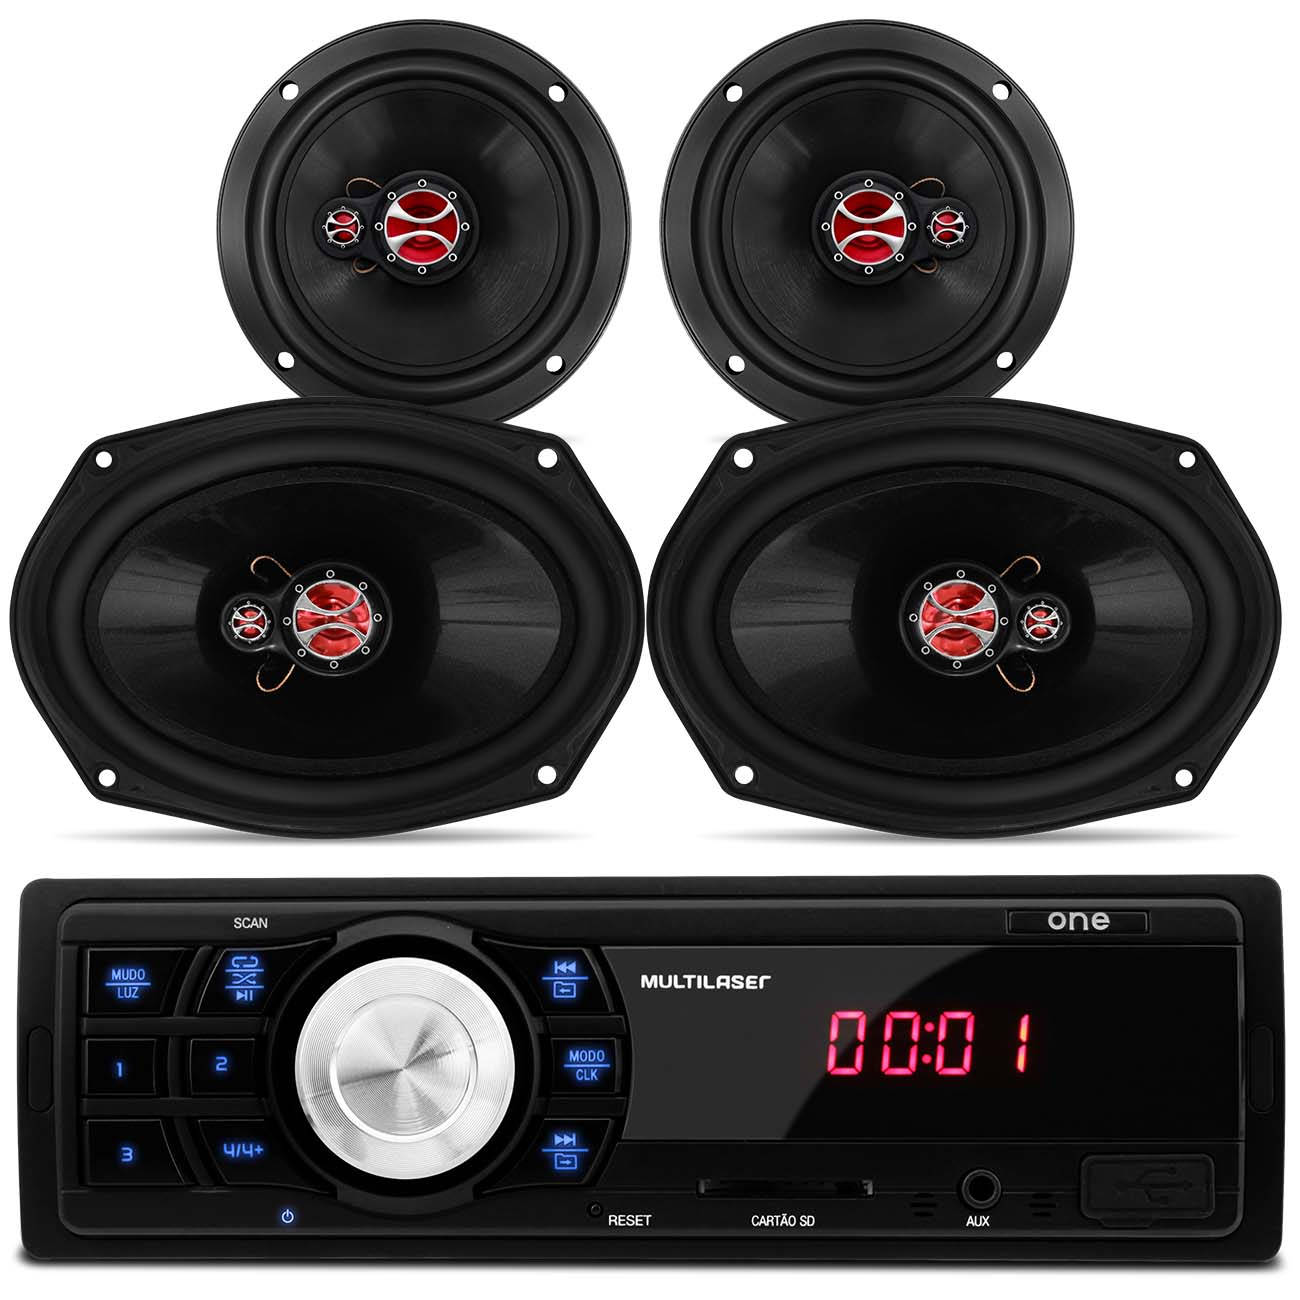 MP3 Player Multilaser One P3213 USB SD + Kit 4 Alto Falantes Traixial 4 Ohms 200W RMS